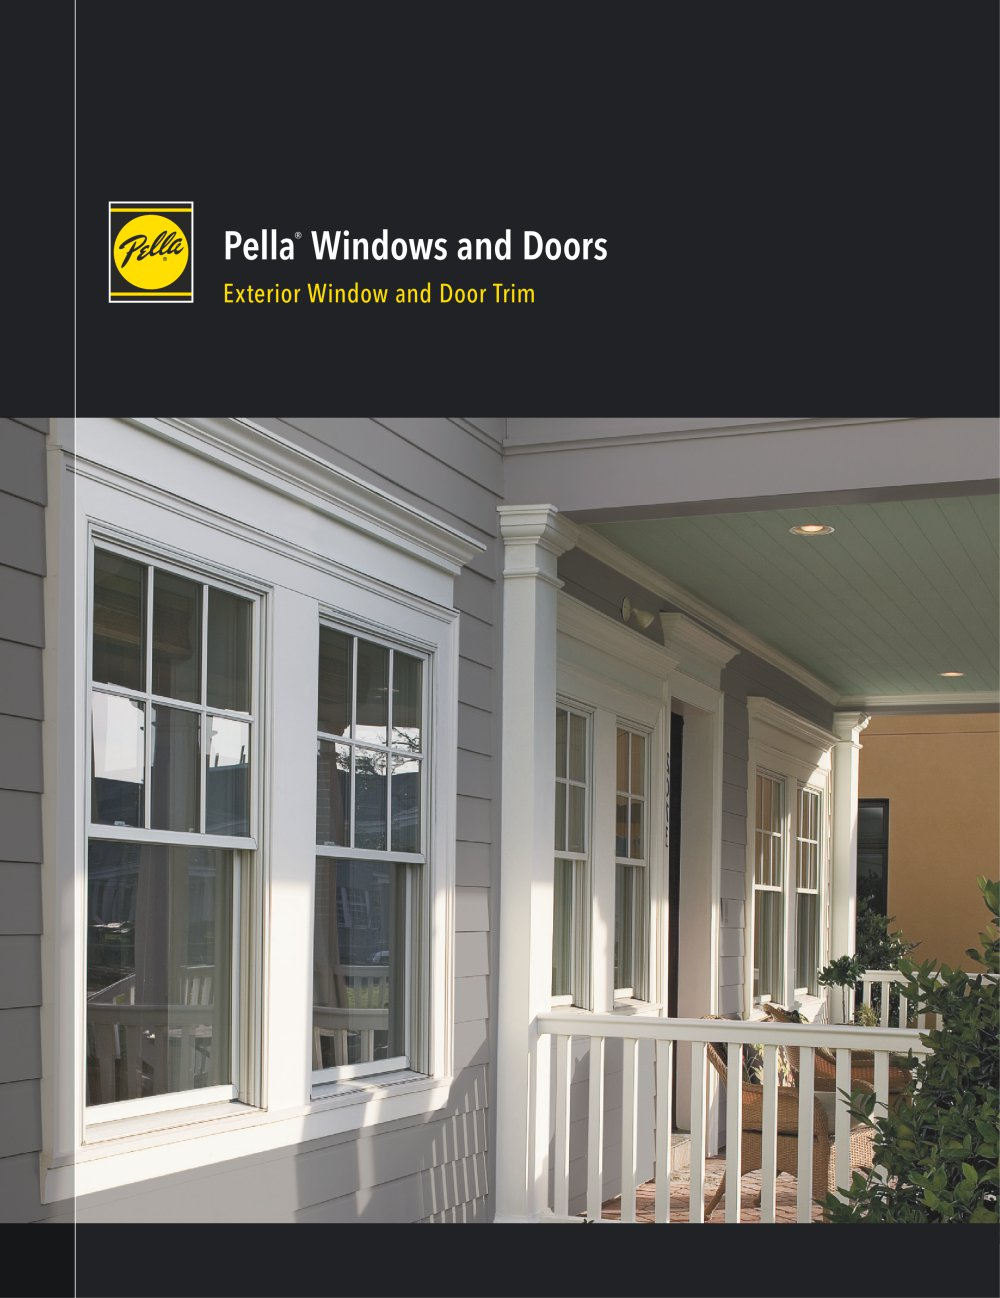 Exterior window trim - Pella Windows And Doors Exterior Window And Door Trim 1 6 Pages